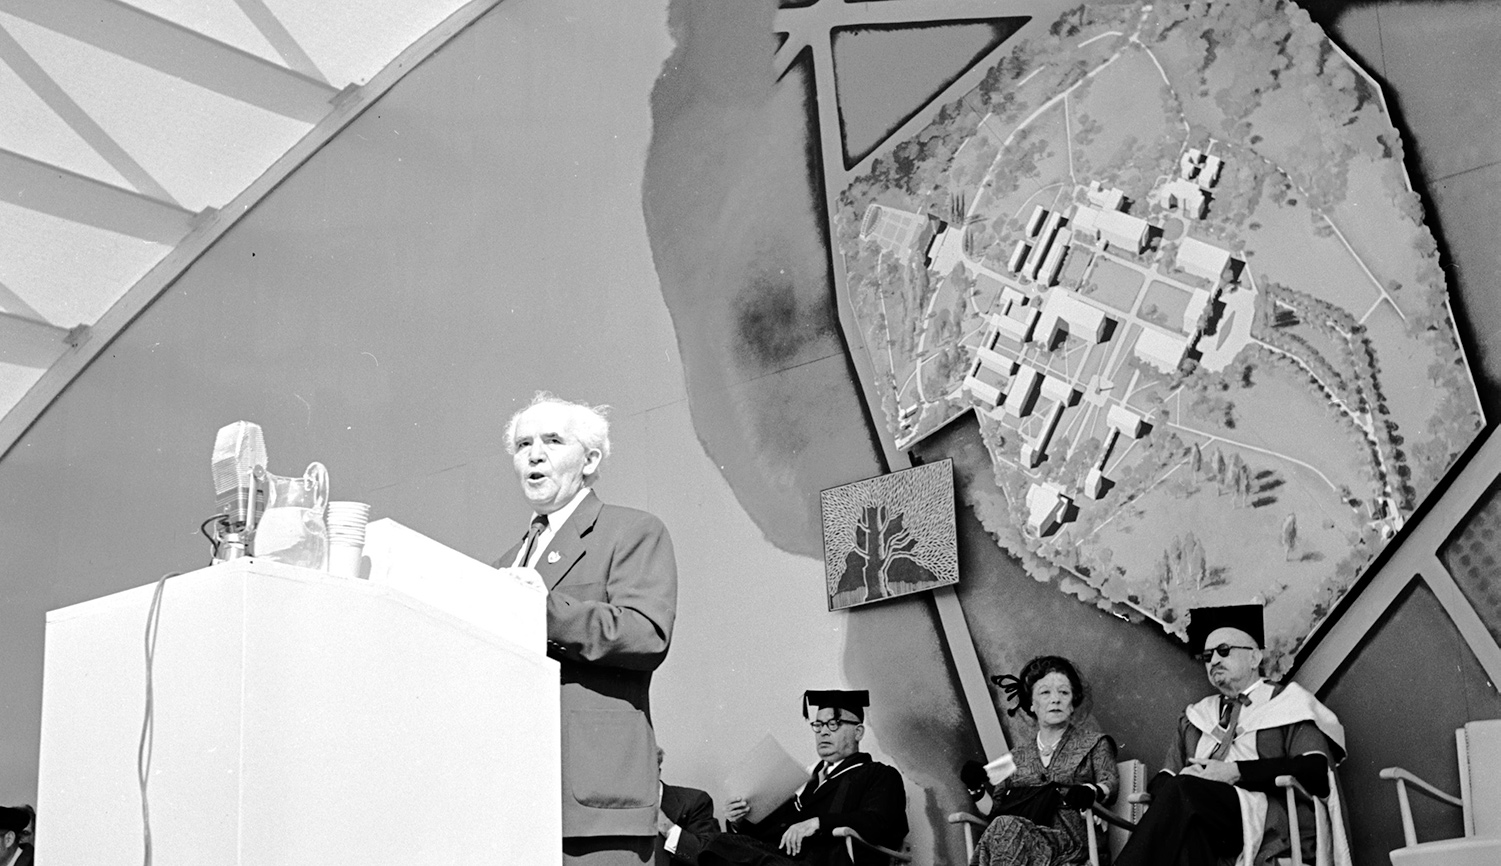 Ben-Gurion's Pragmatic Approach to Borders